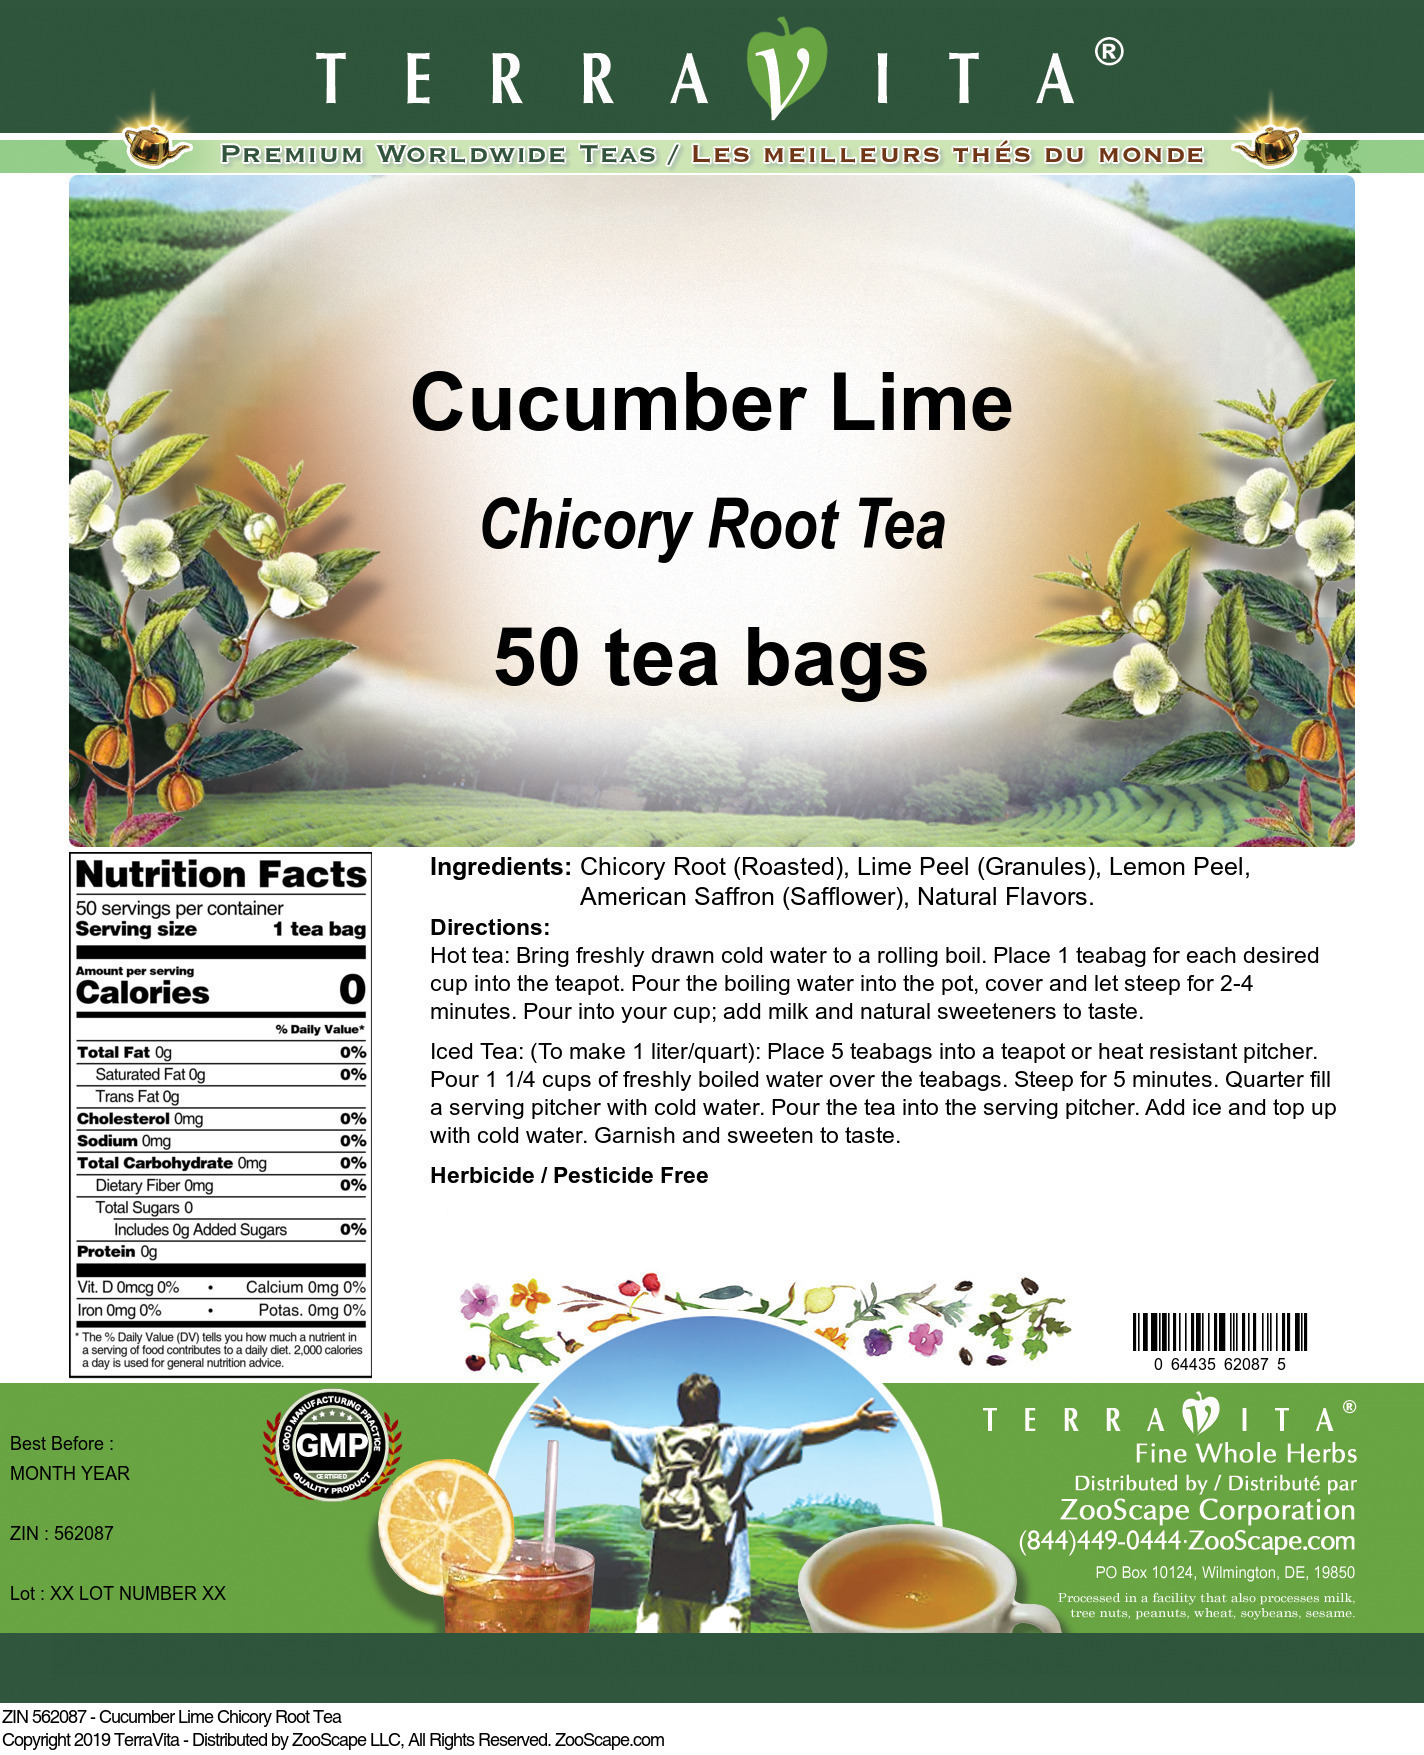 Cucumber Lime Chicory Root Tea